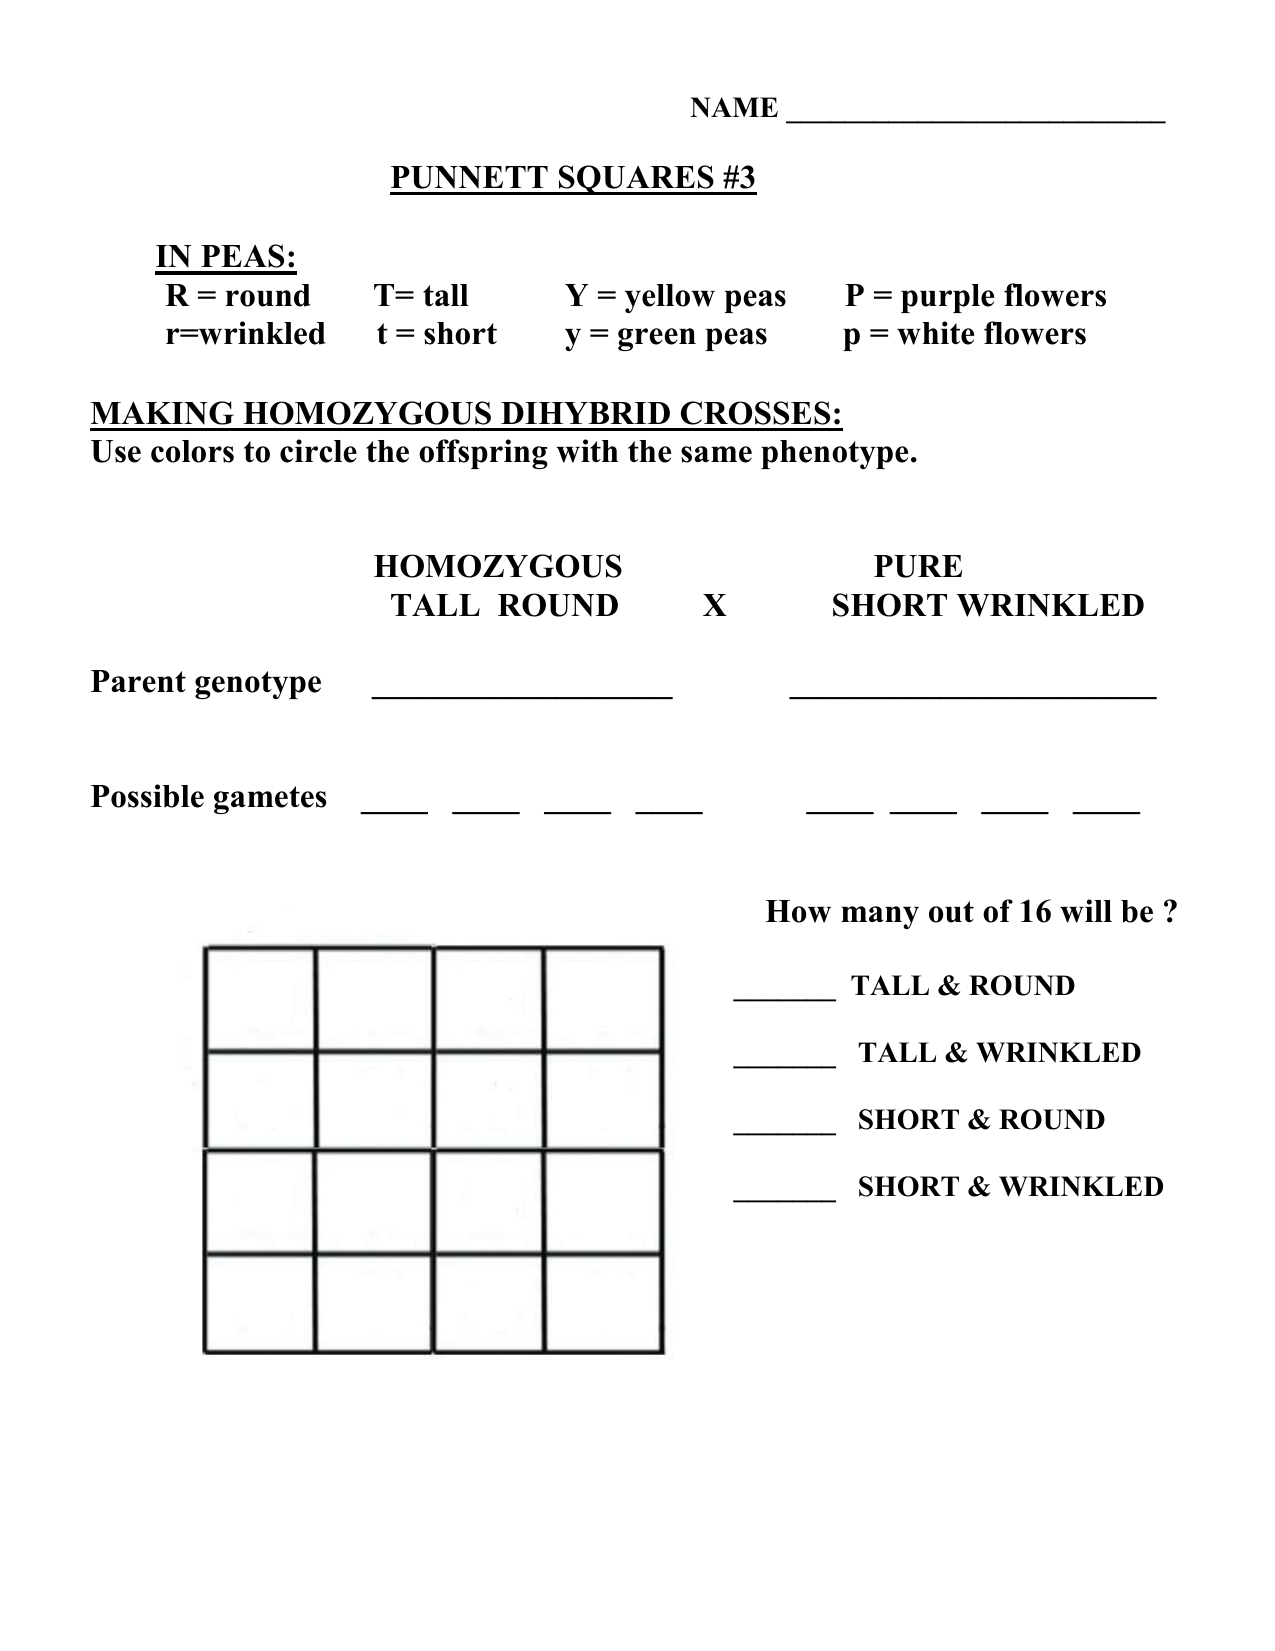 Worksheets Dihybrid Cross Worksheet Answer Key